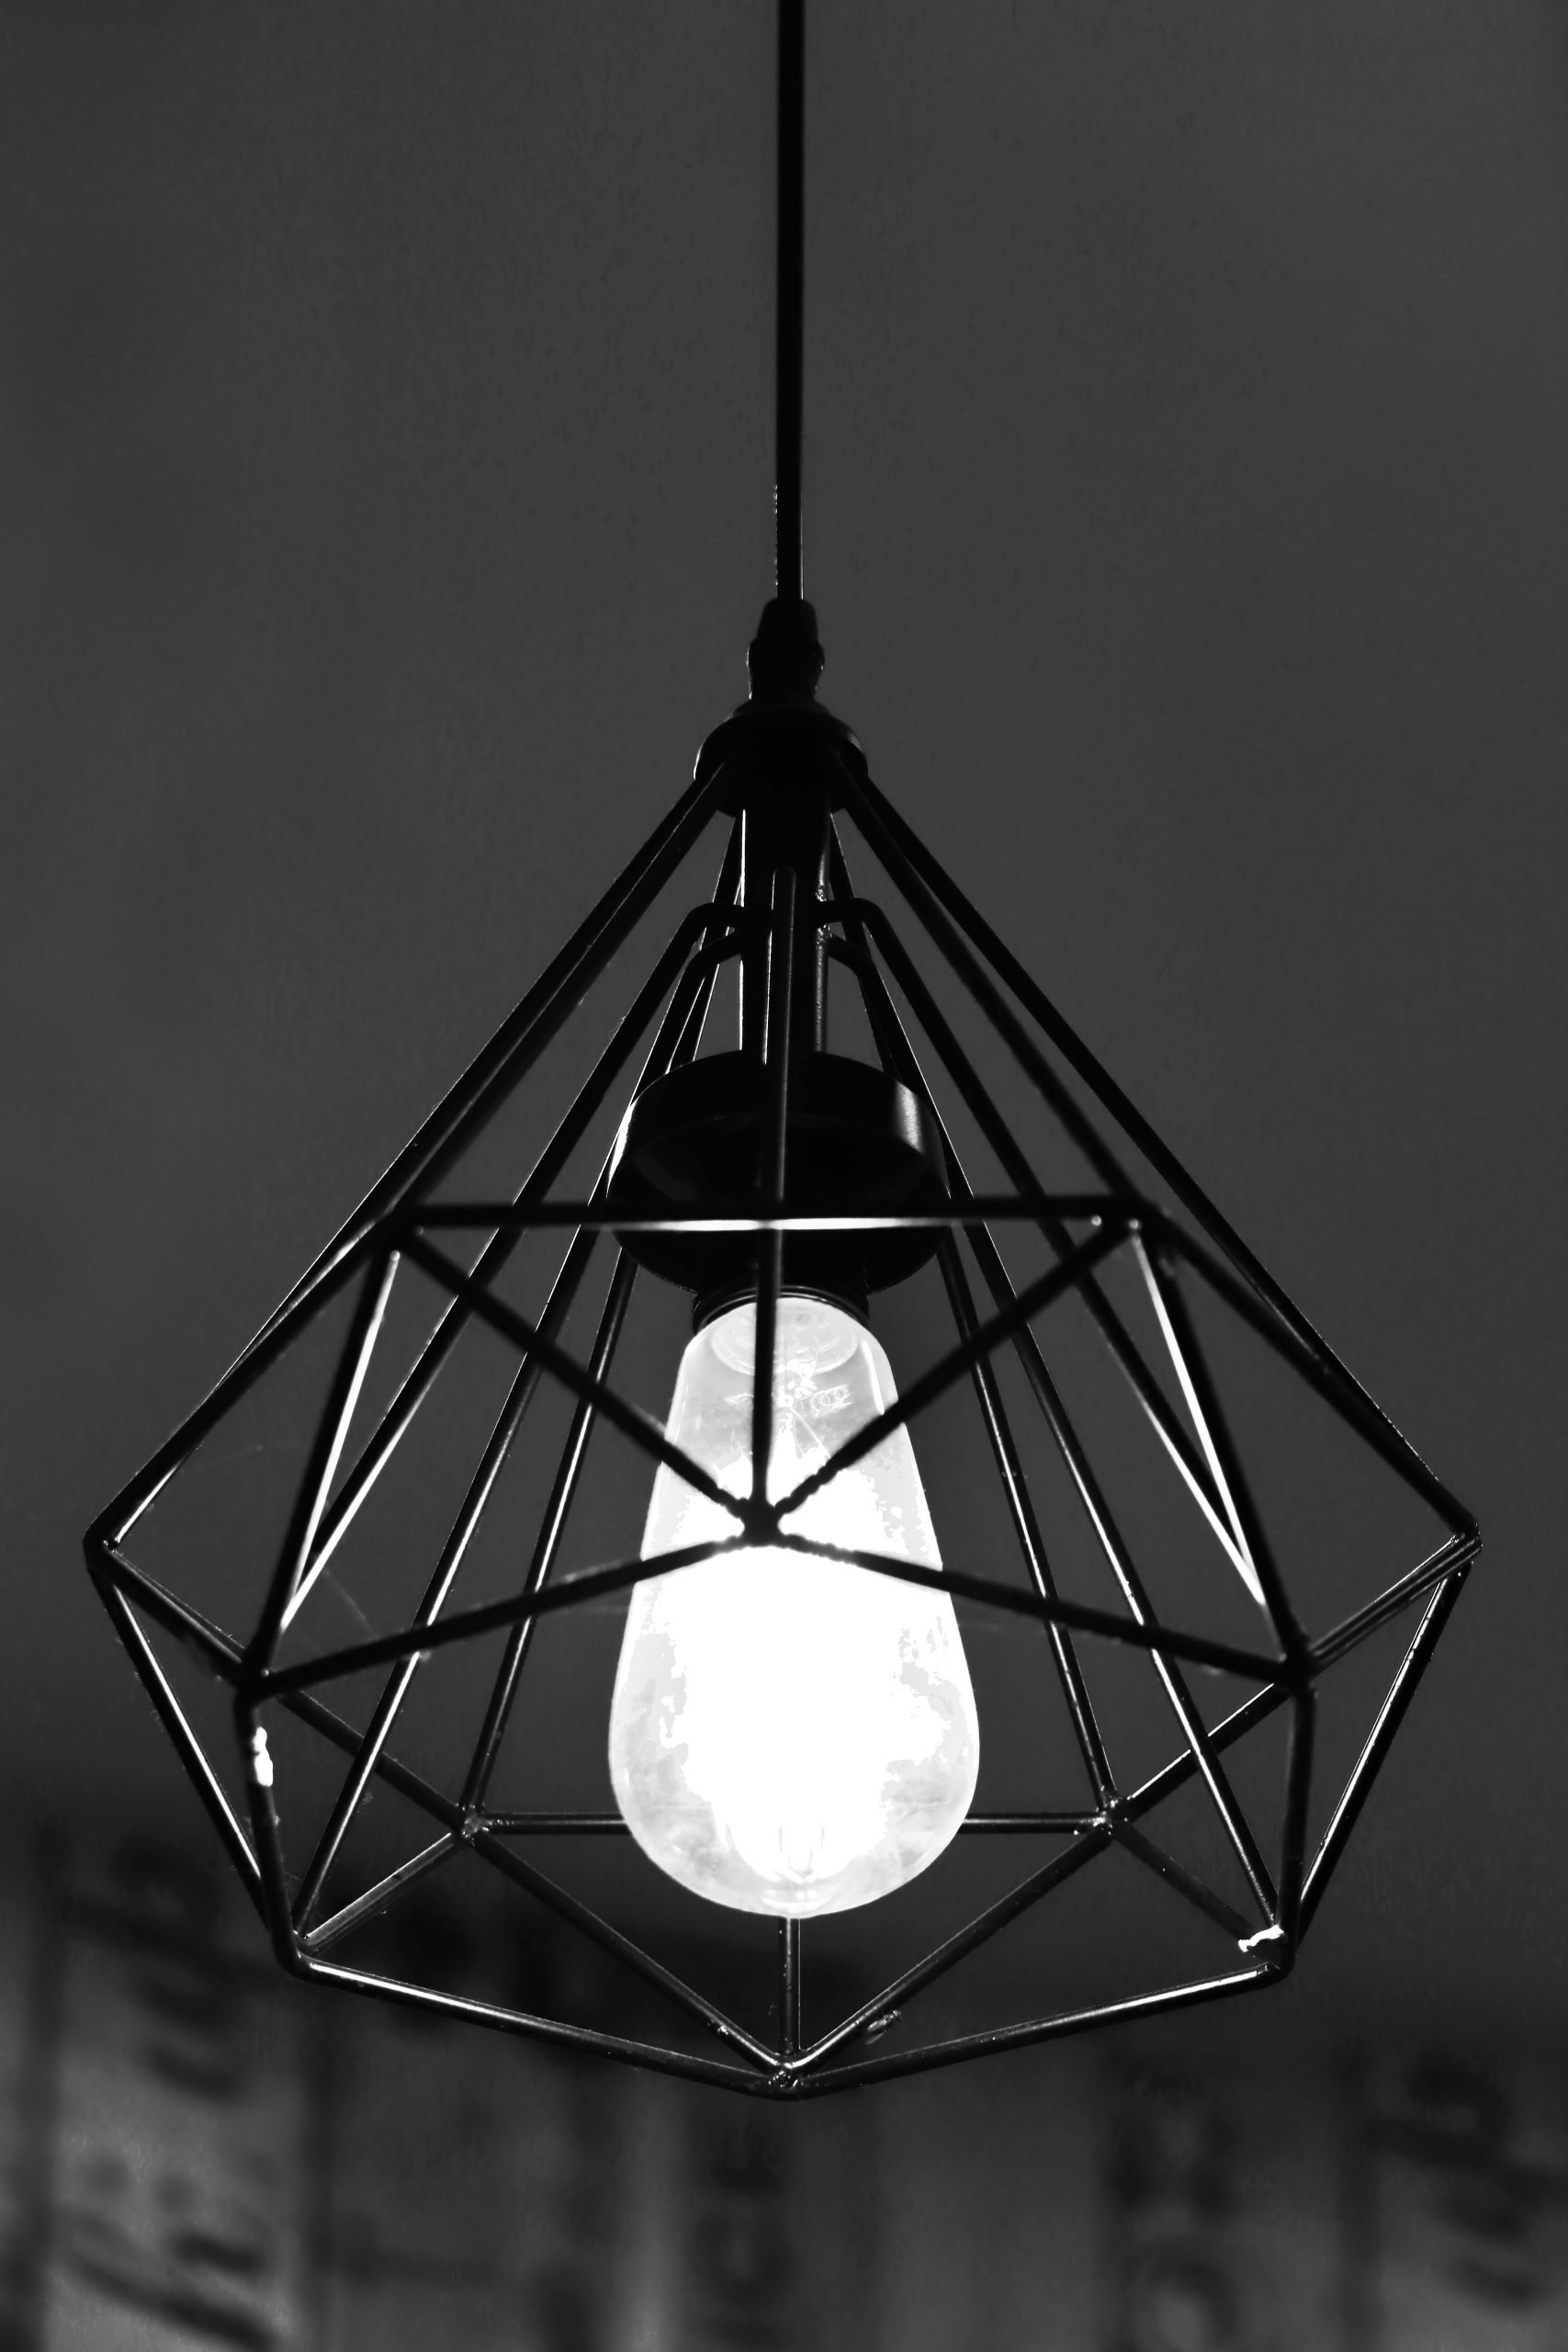 Chandelier in black and white